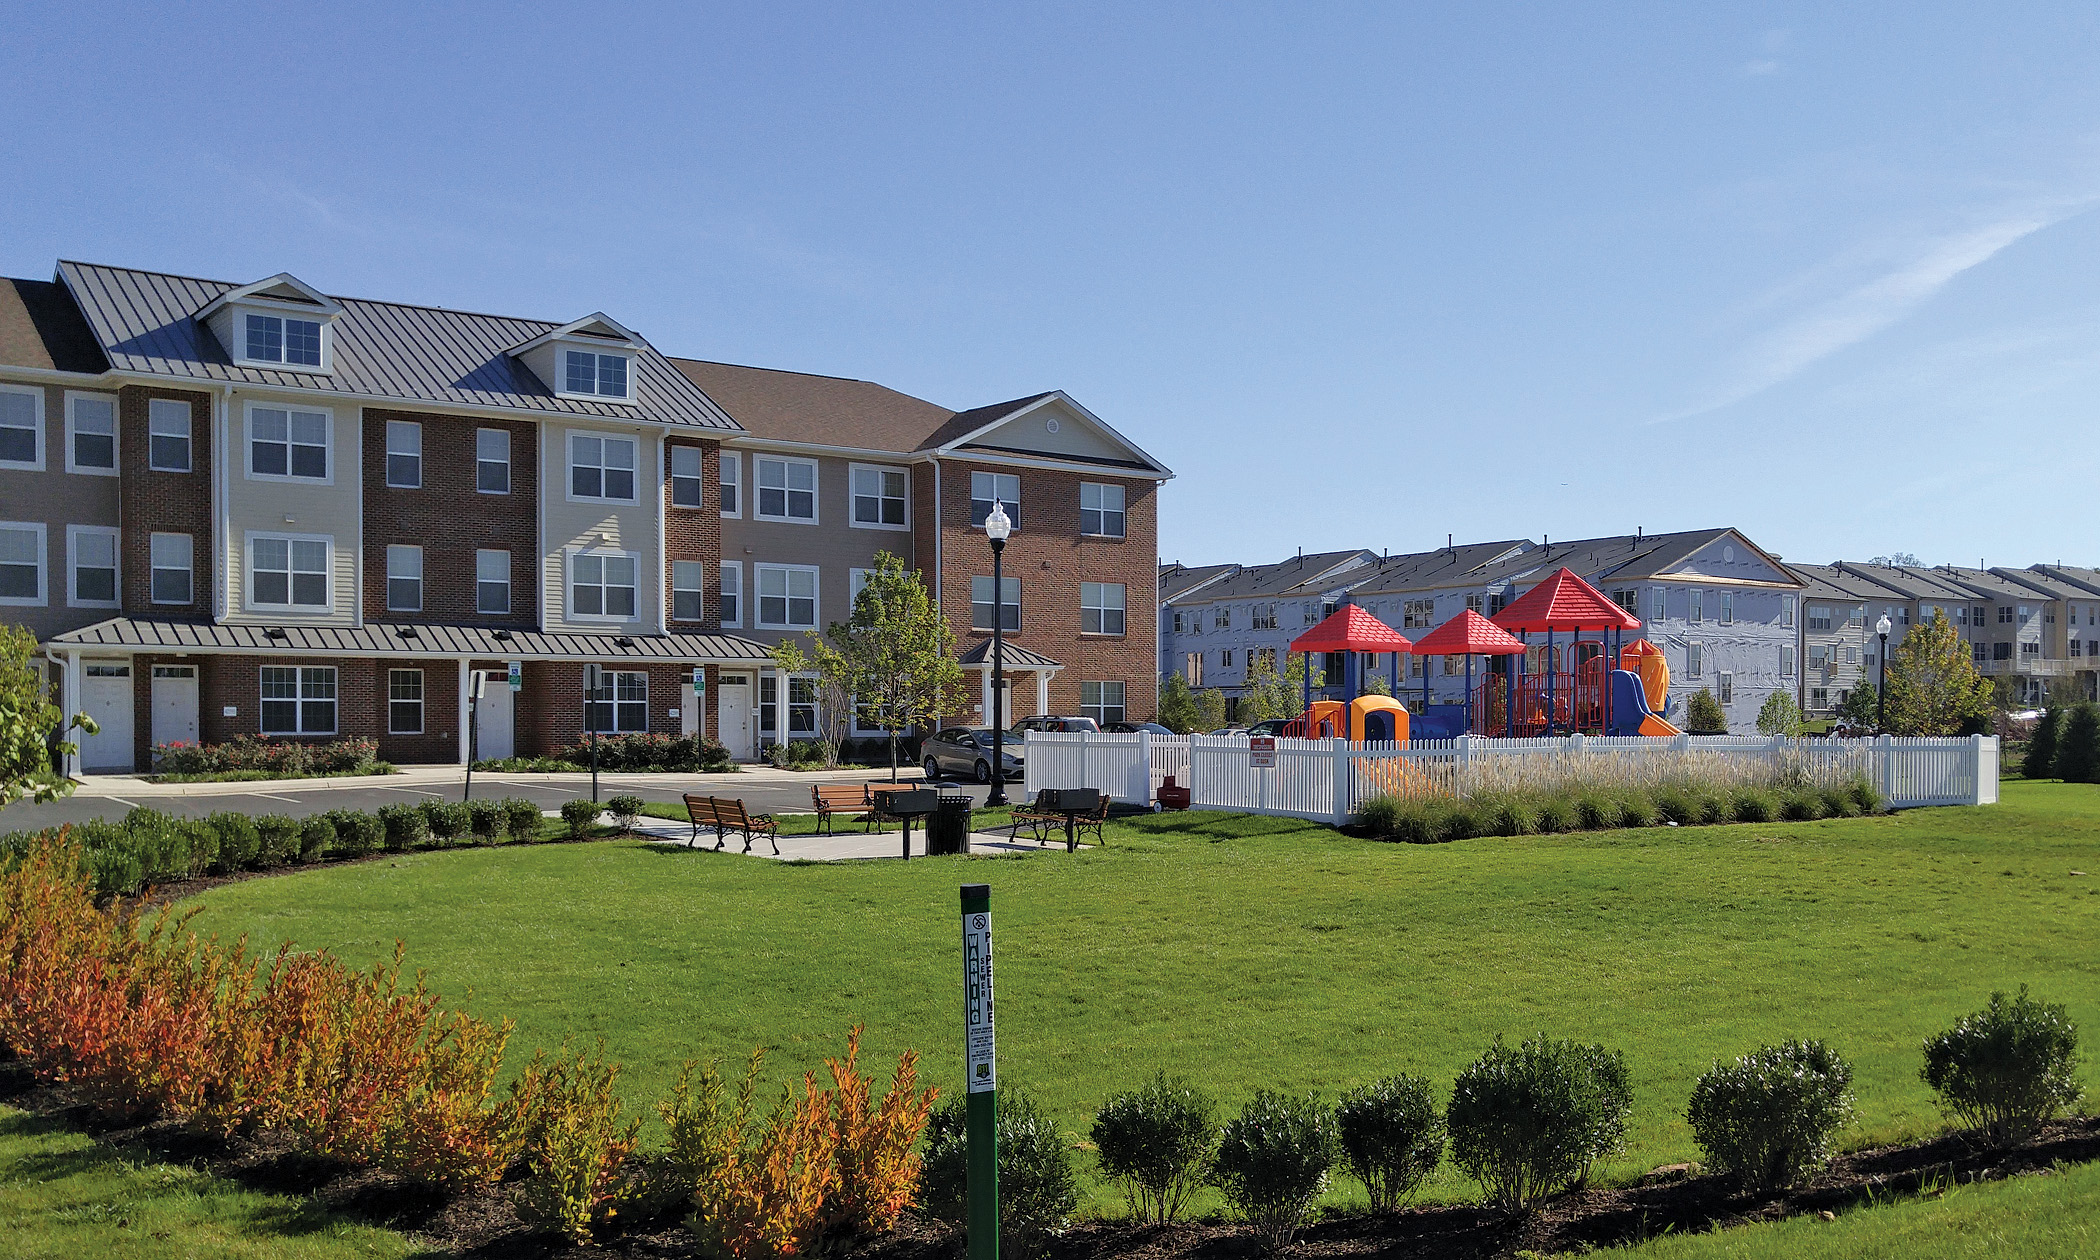 our Projects - Learn more about our affordable housing projects in Northern Virginia.